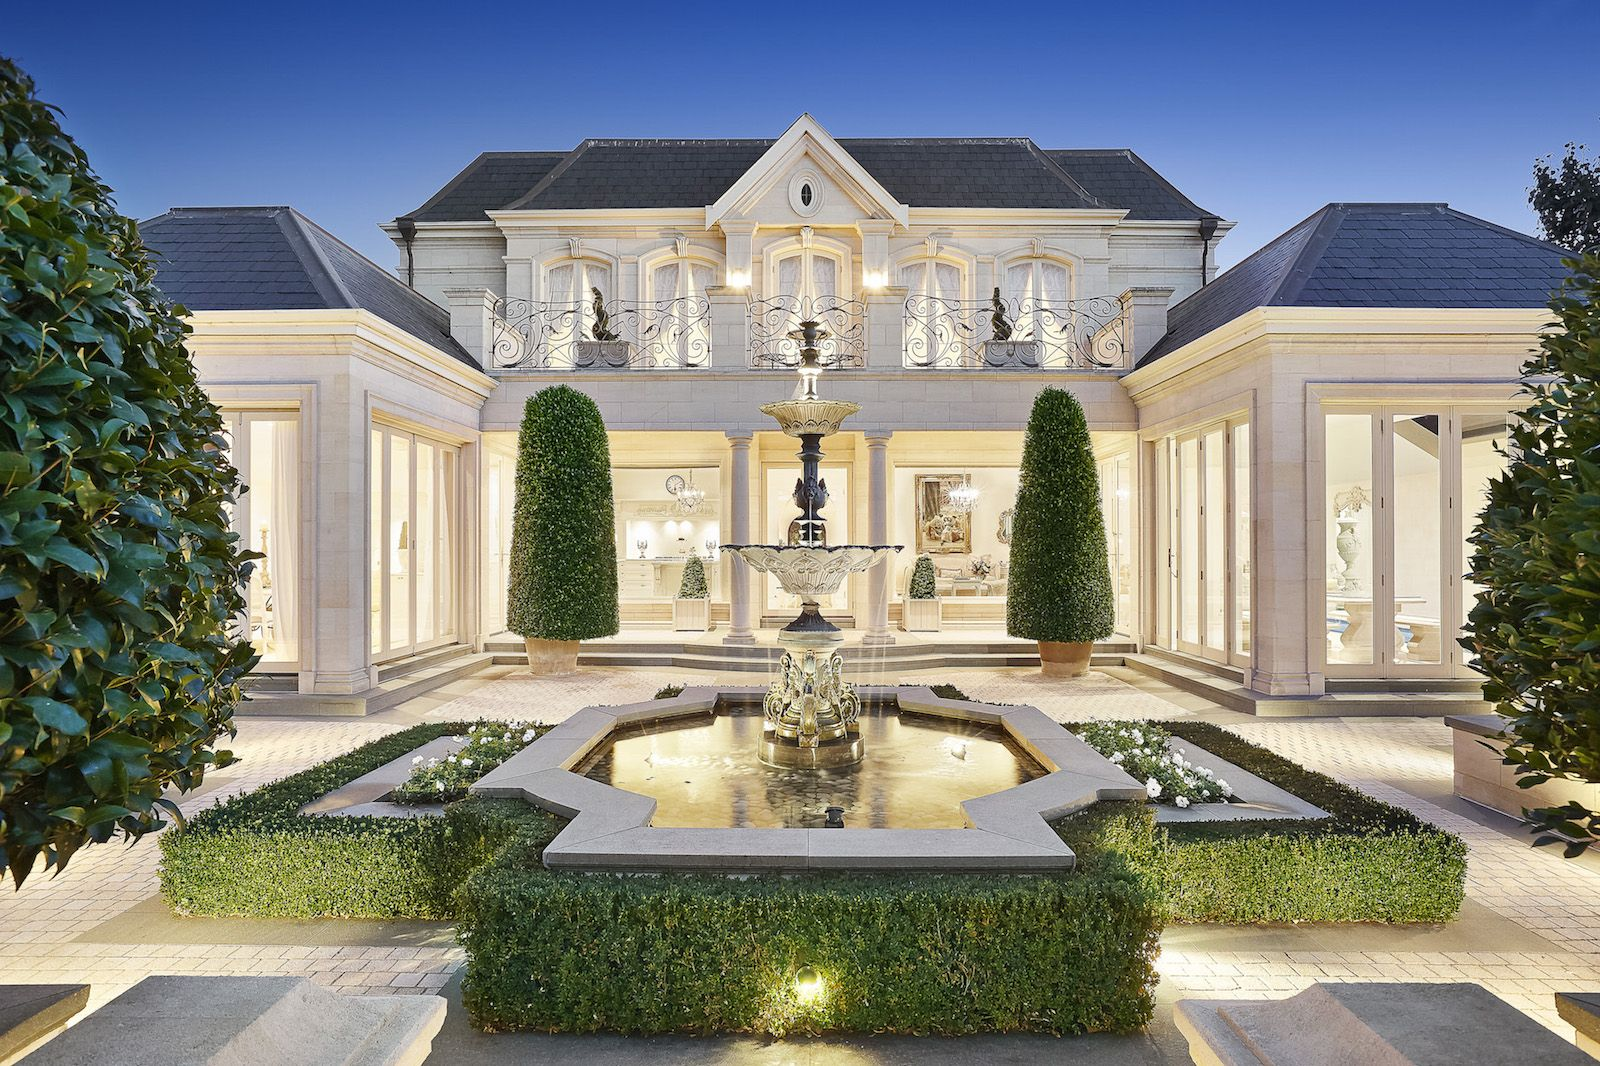 Unsurpassed Luxury in a Refined Manor This most magnificent, recently constructed French Chateau style limestone residence of grand proportions and symmetry exudes six star superior quality and crafts is part of House -